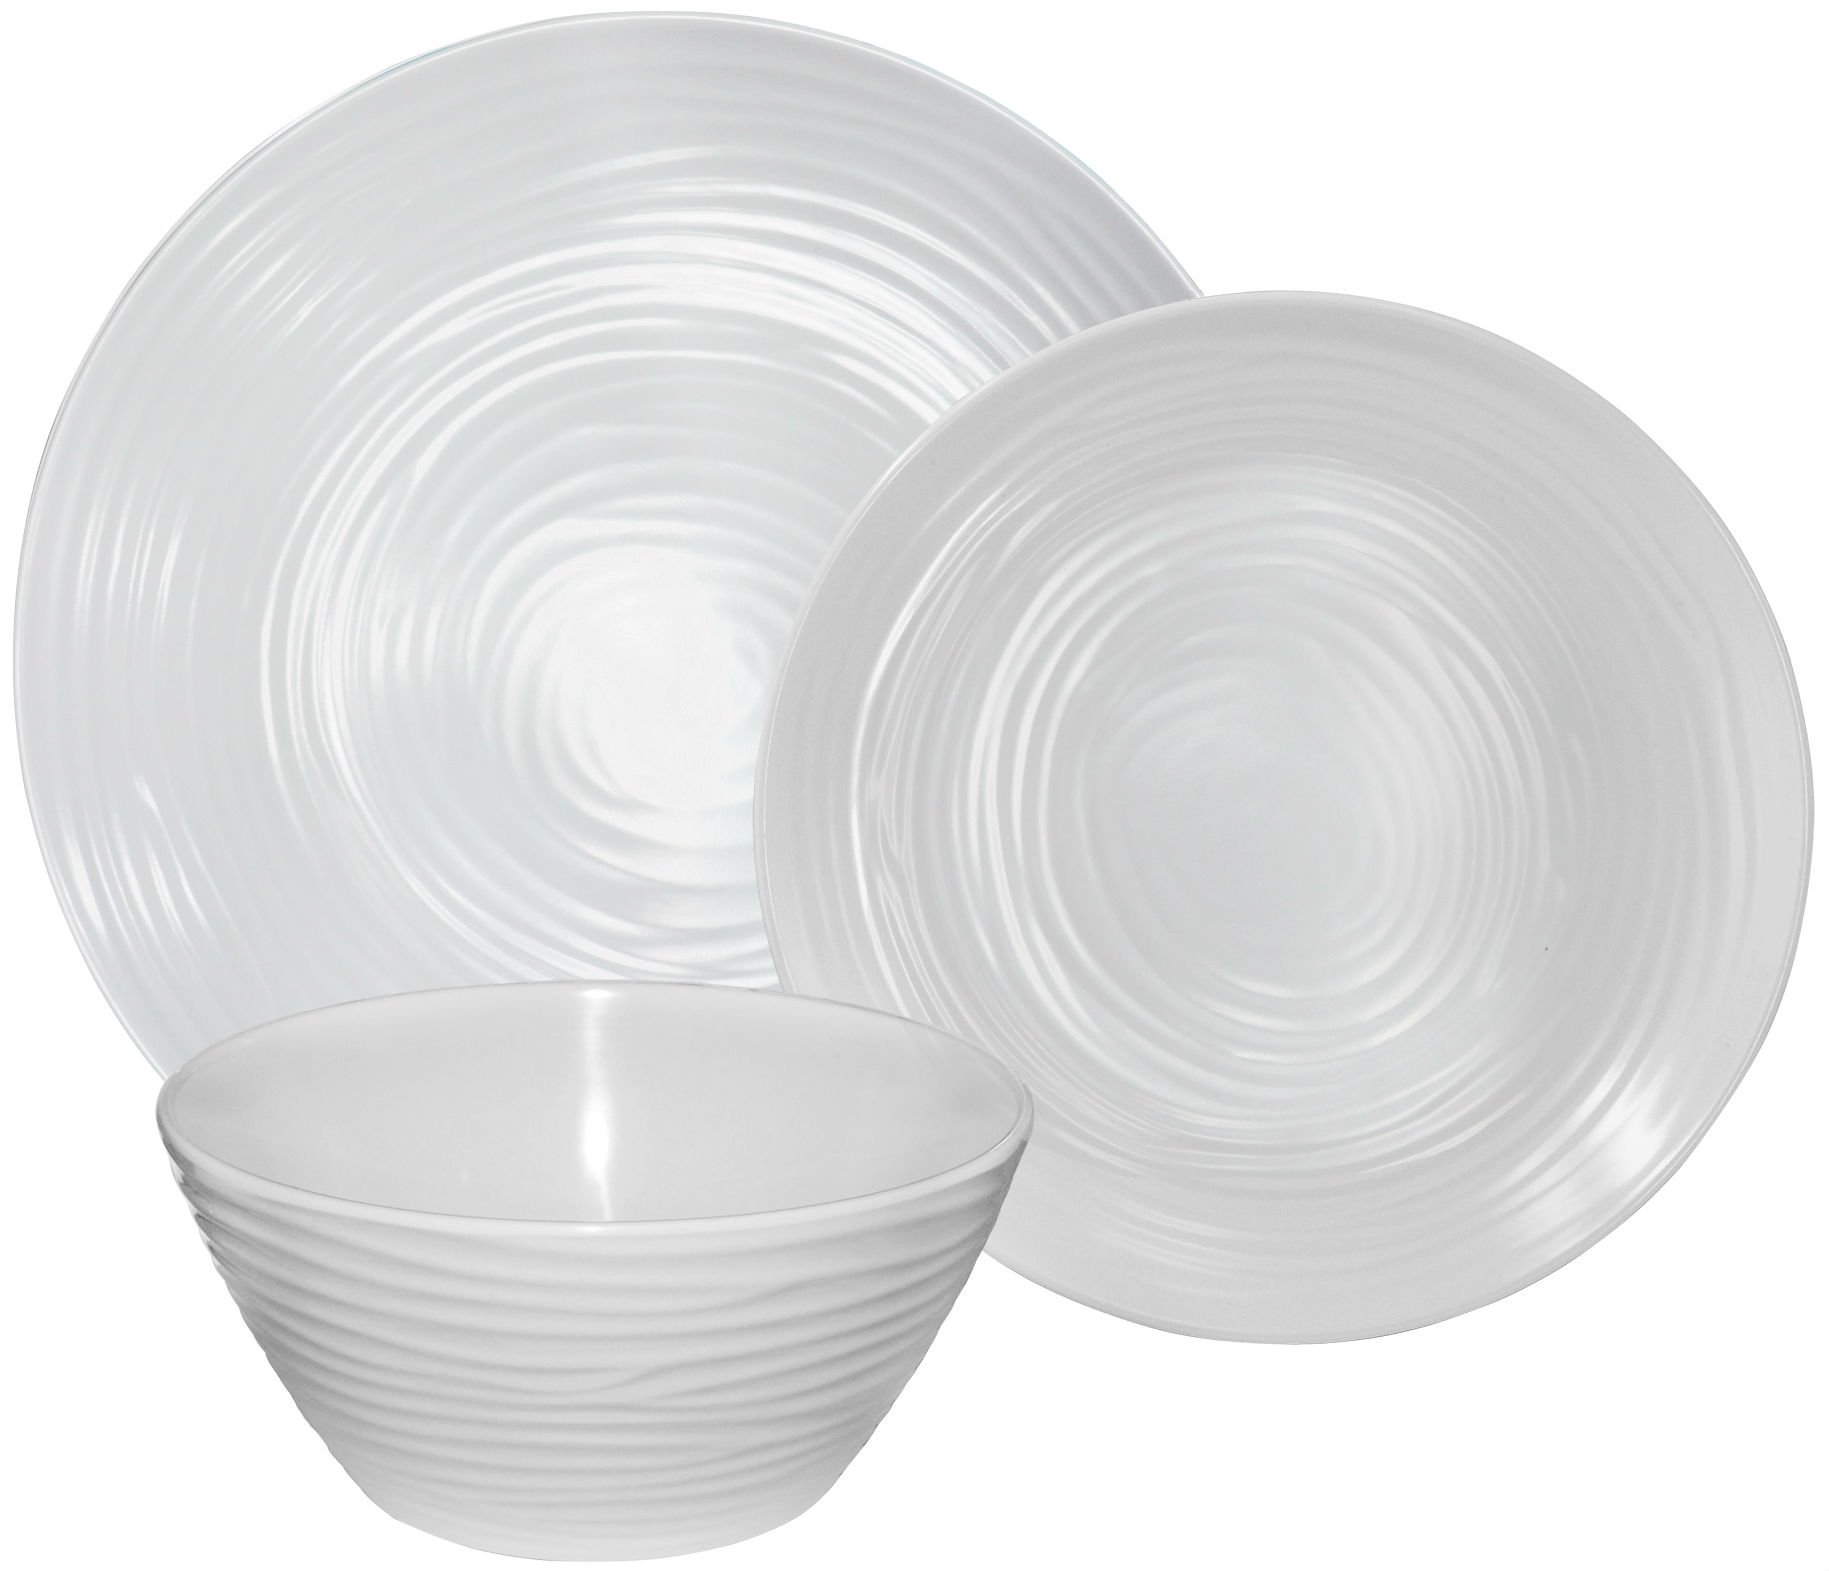 Parhoma White Melamine Home Dinnerware Set, 12-Piece Service for 4 by Parhoma (Image #7)